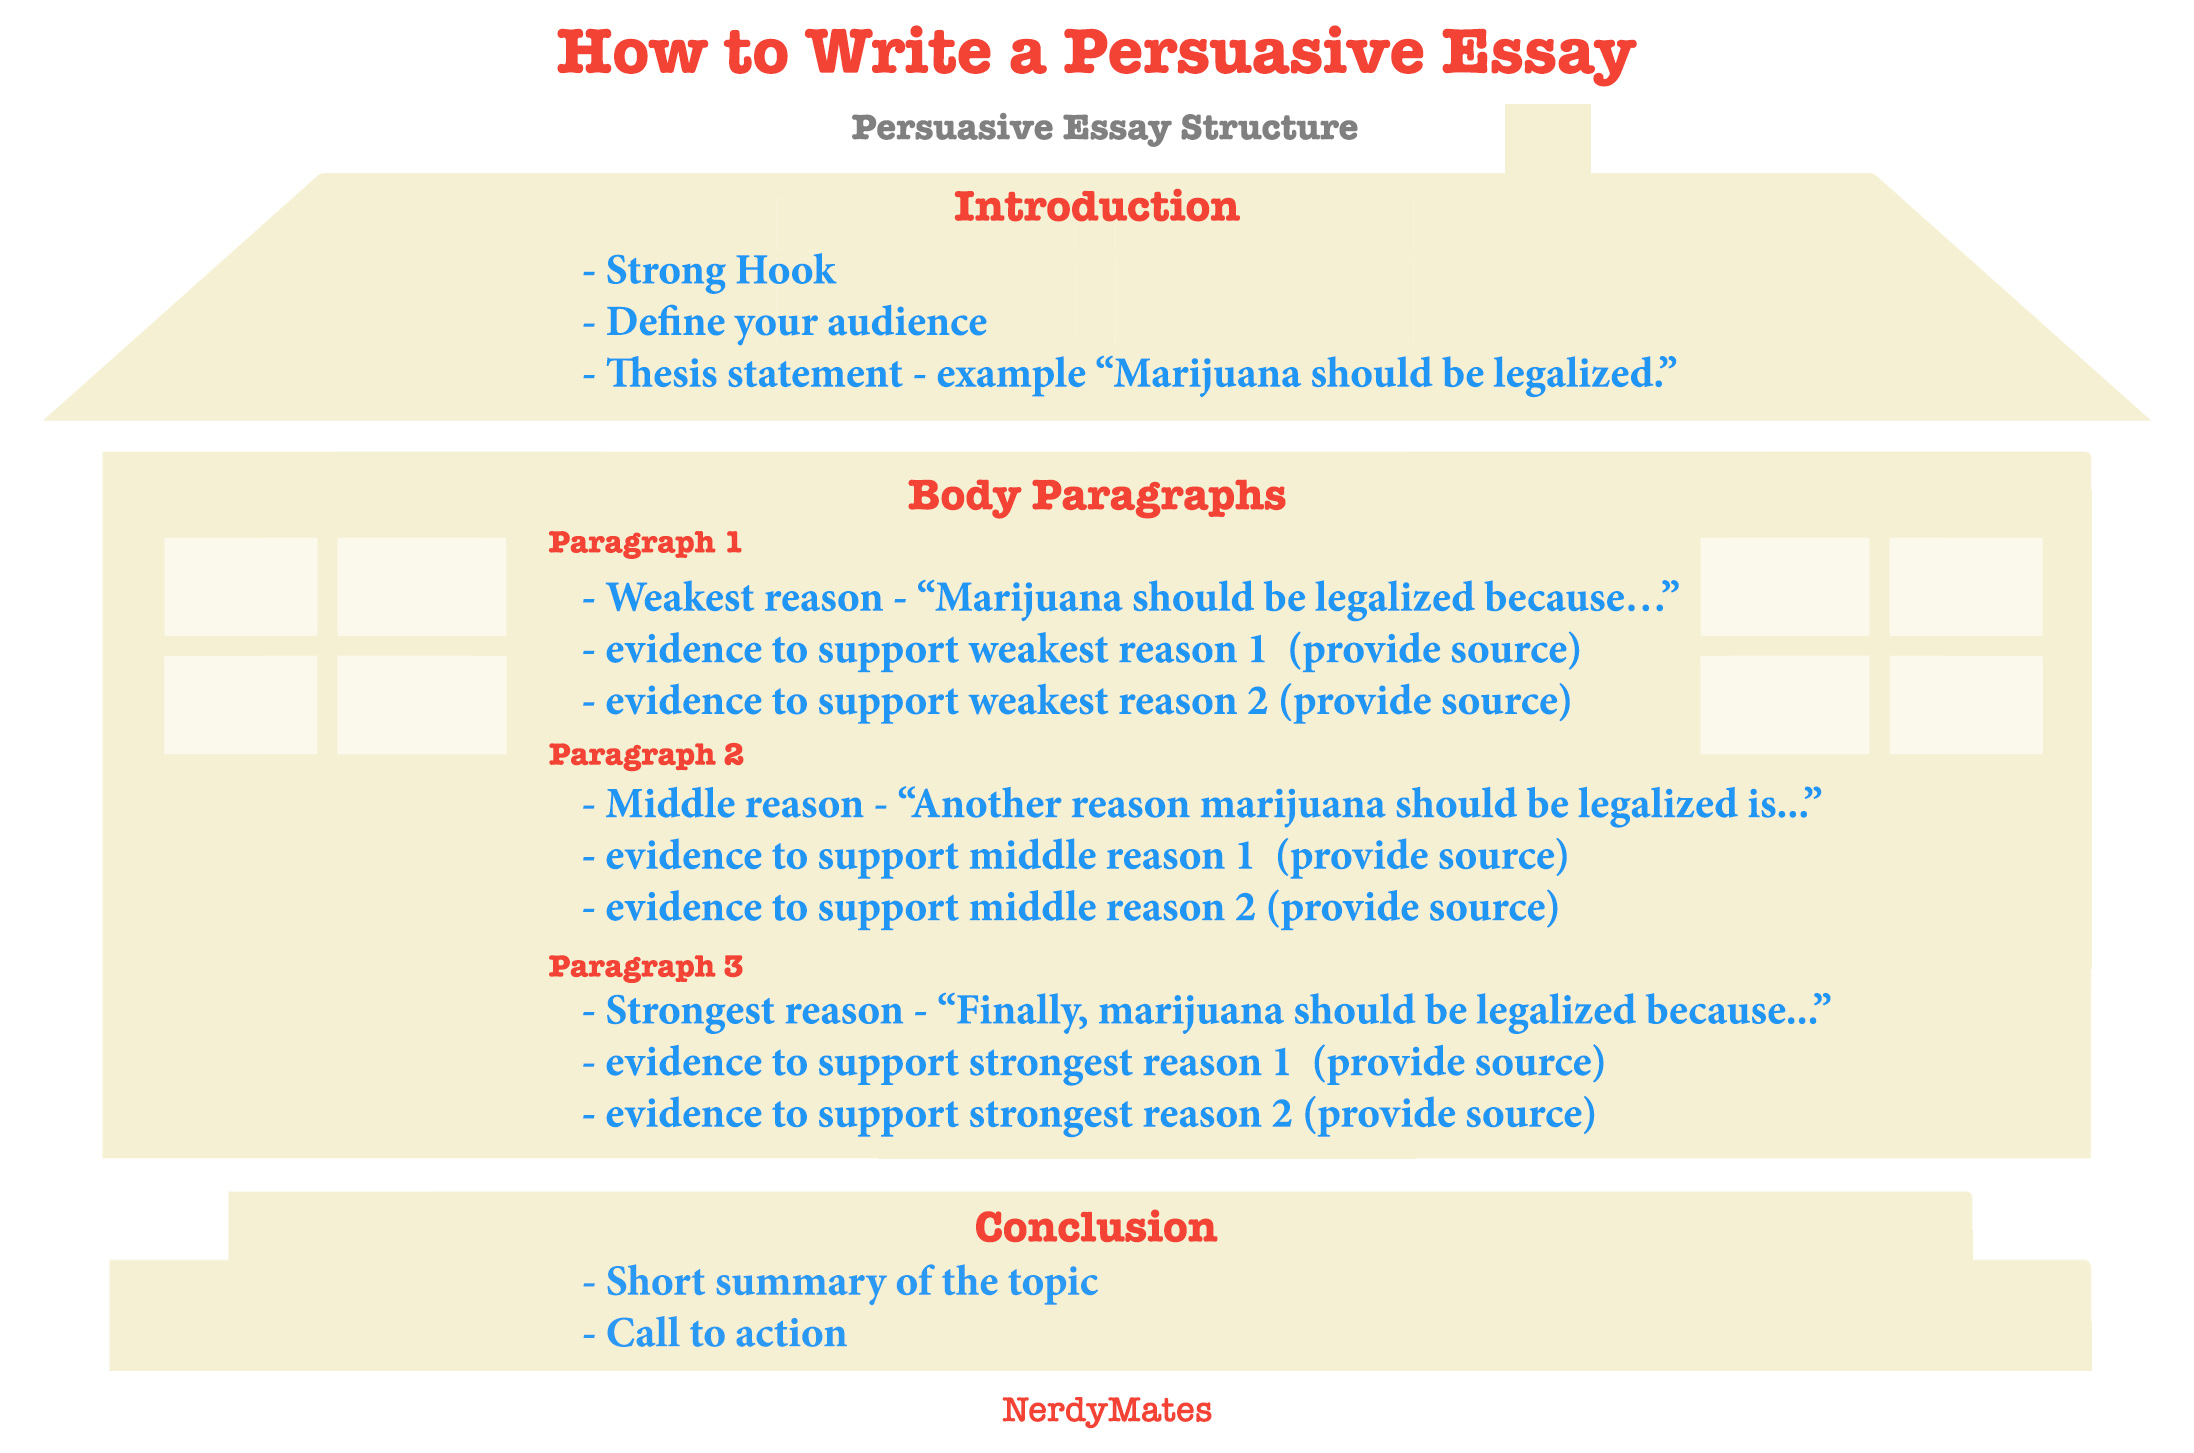 when writing a persuasive essay can you use first person Why join the military persuasive essay - can you write an essay my favorite person essay zipper essays can you write an argumentative essay in first.